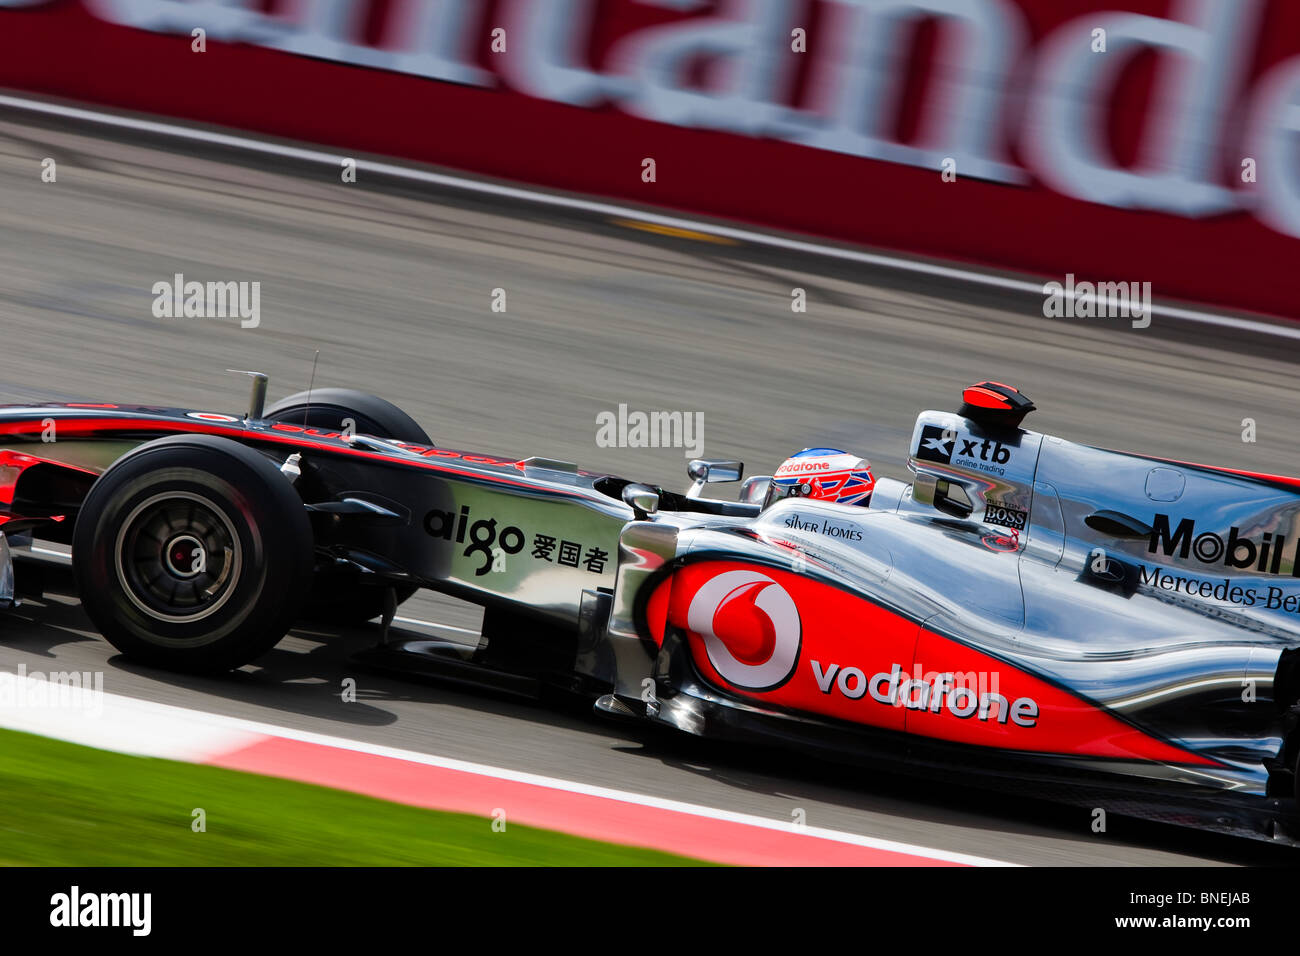 163ea4ff43a Jenson Button at speed Silverstone UK 2010 Mercedes Mclaren england UK -  Stock Image